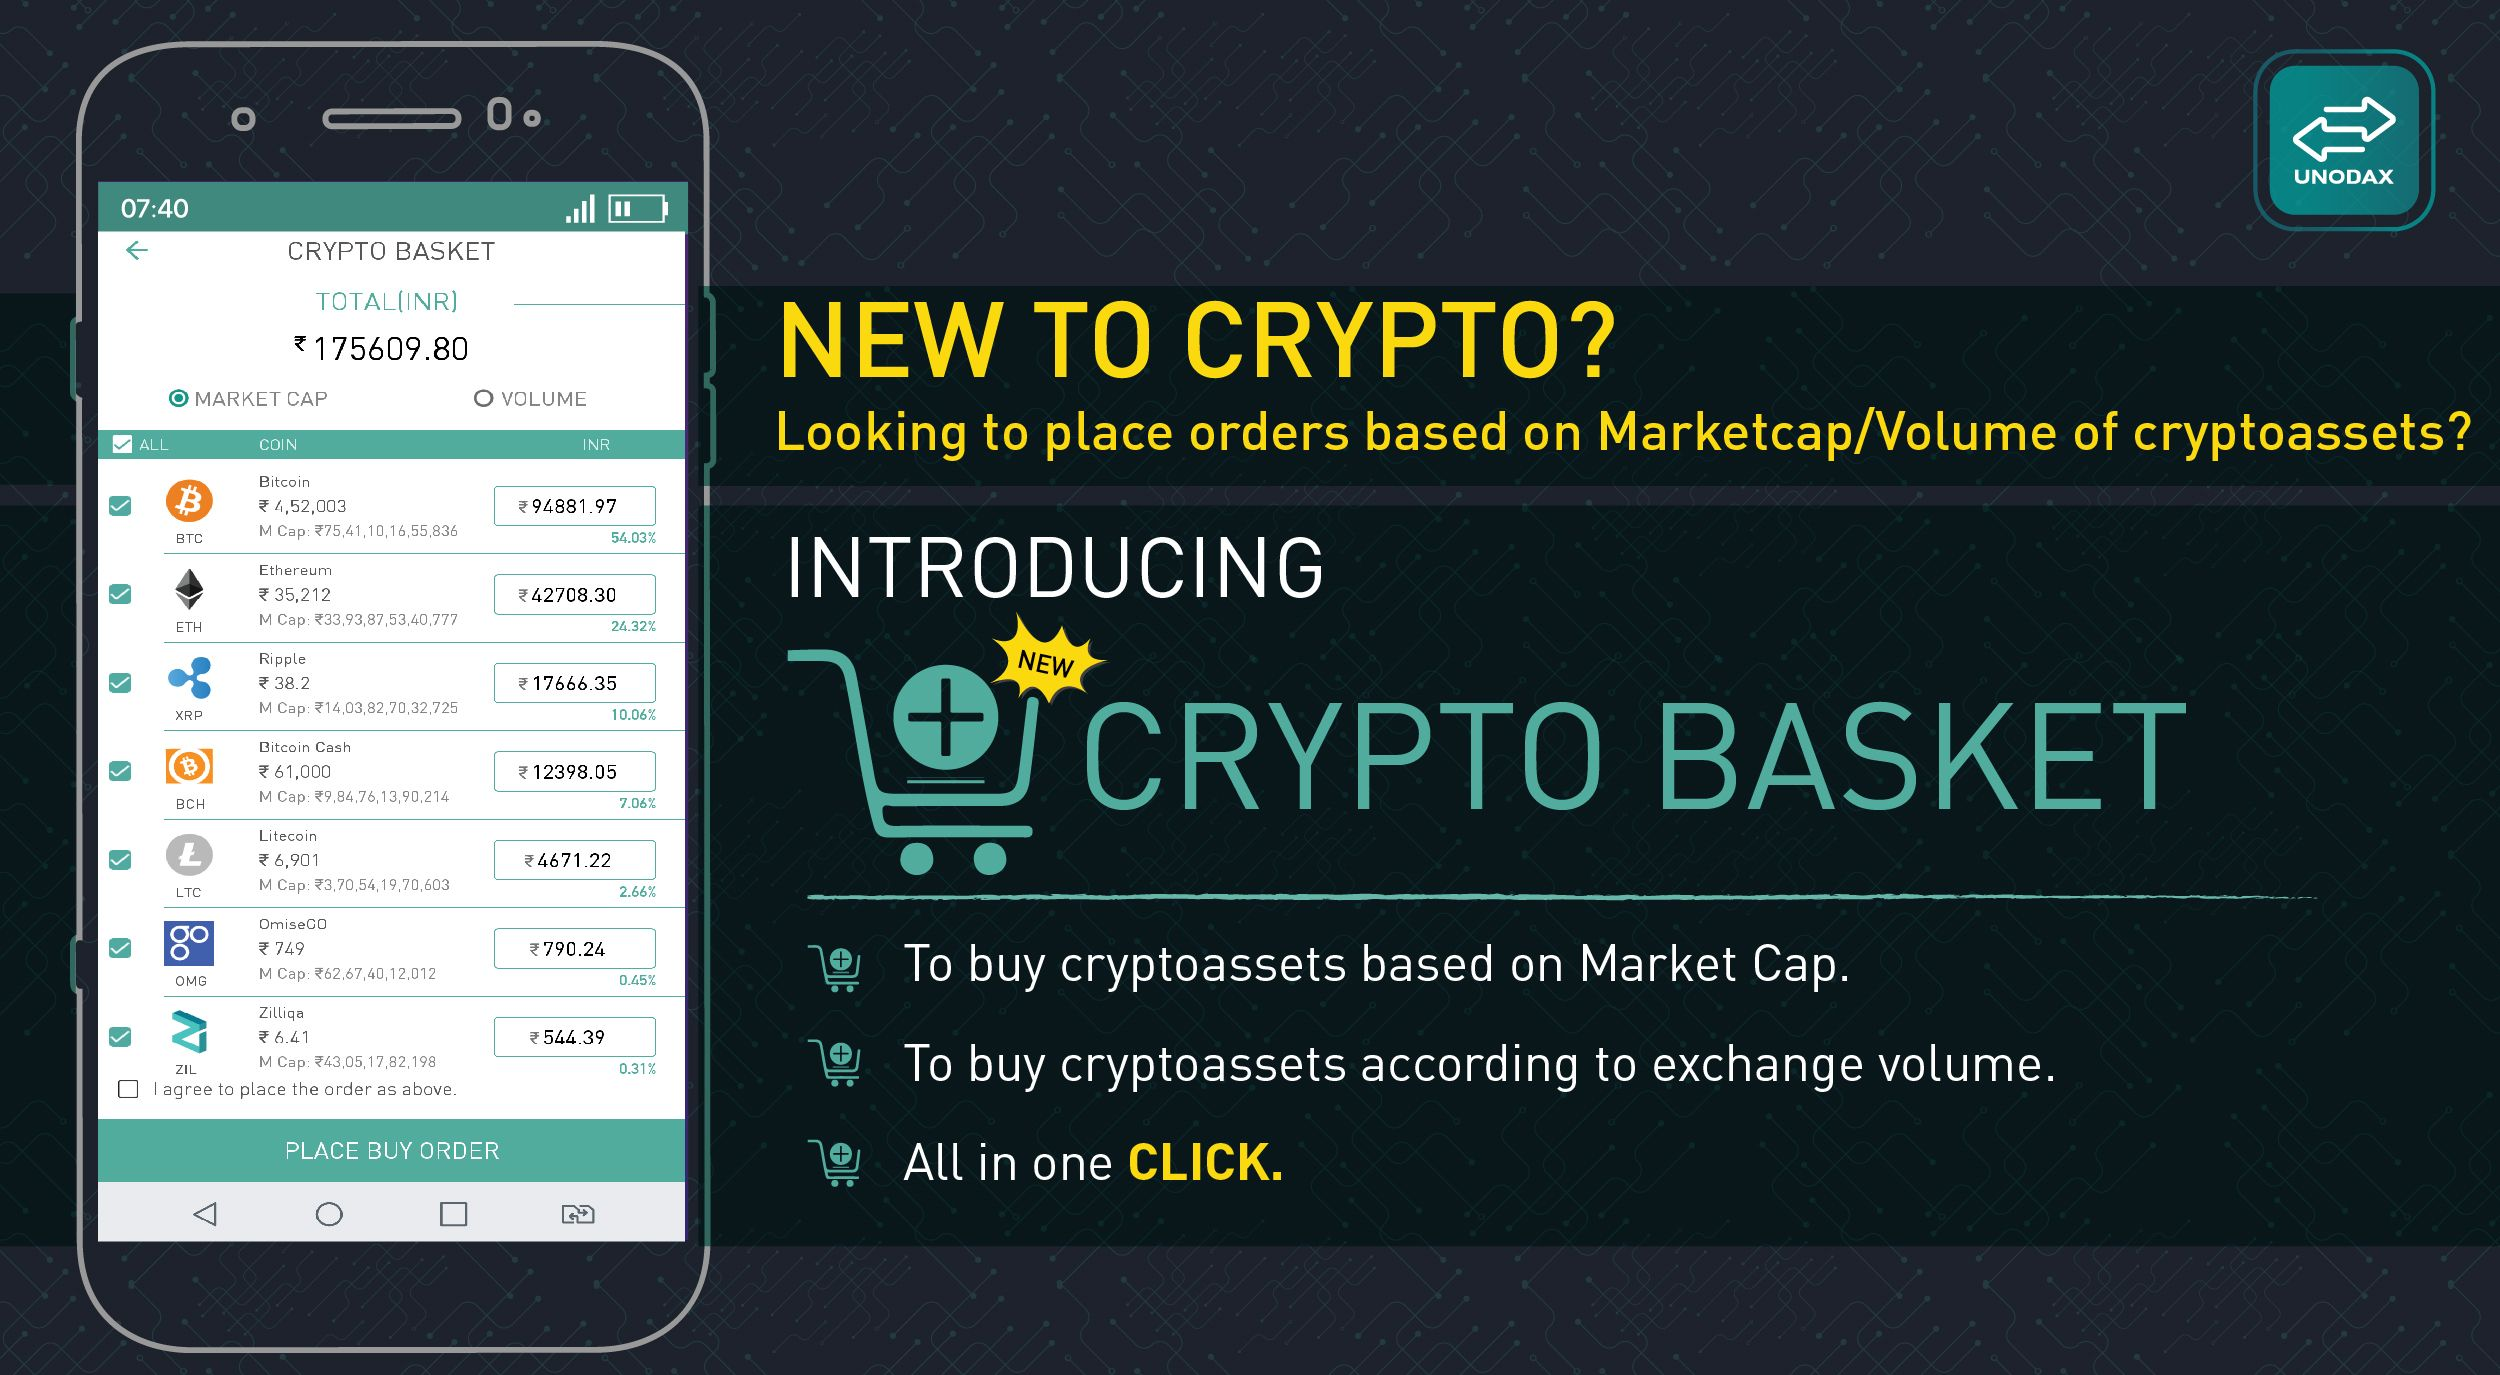 New to crypto? Looking to place orders based on Market Cap